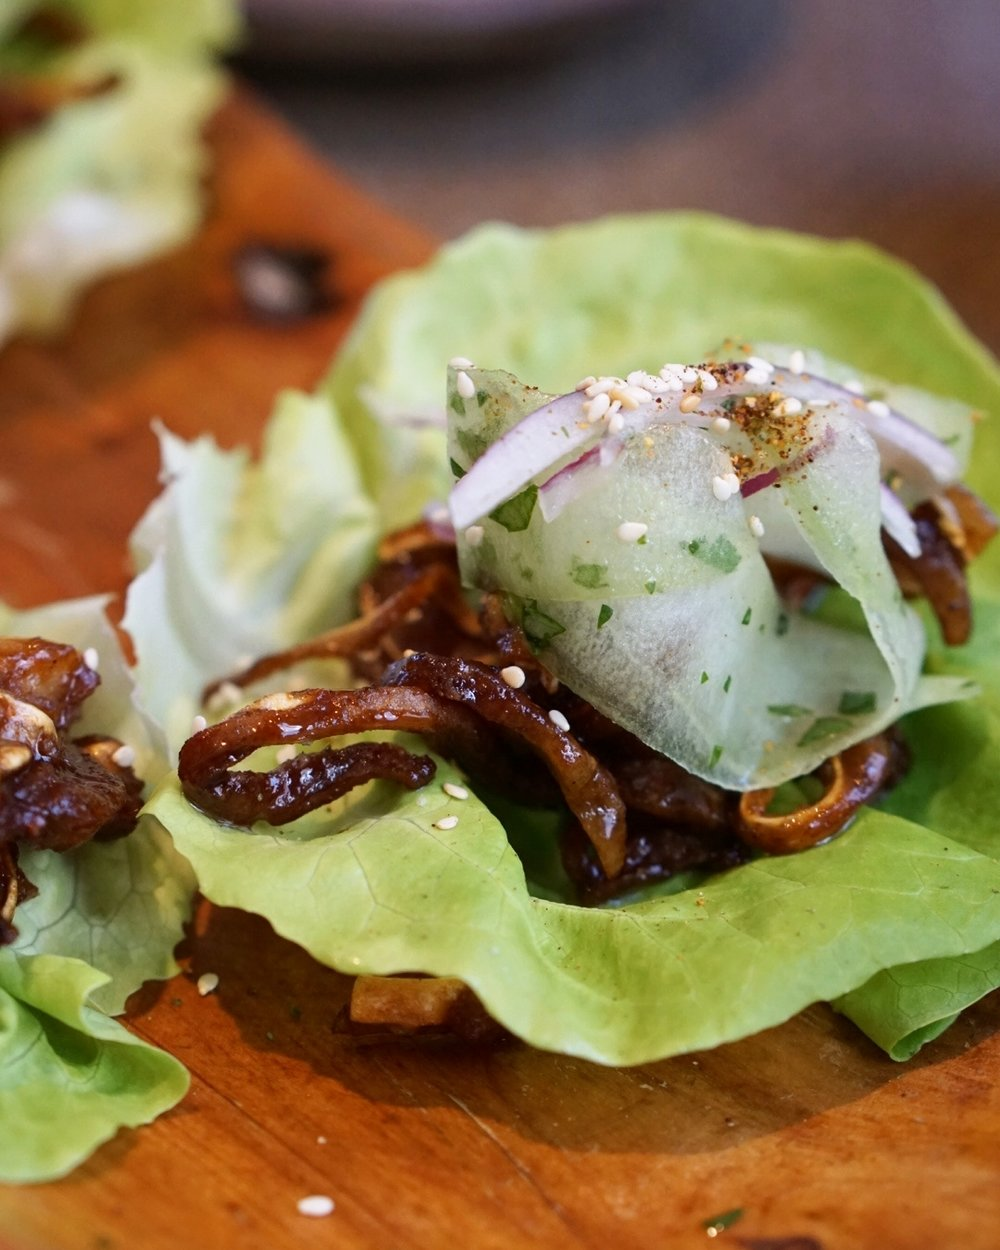 Pig's ear in lettuce wrap, available at Husk.